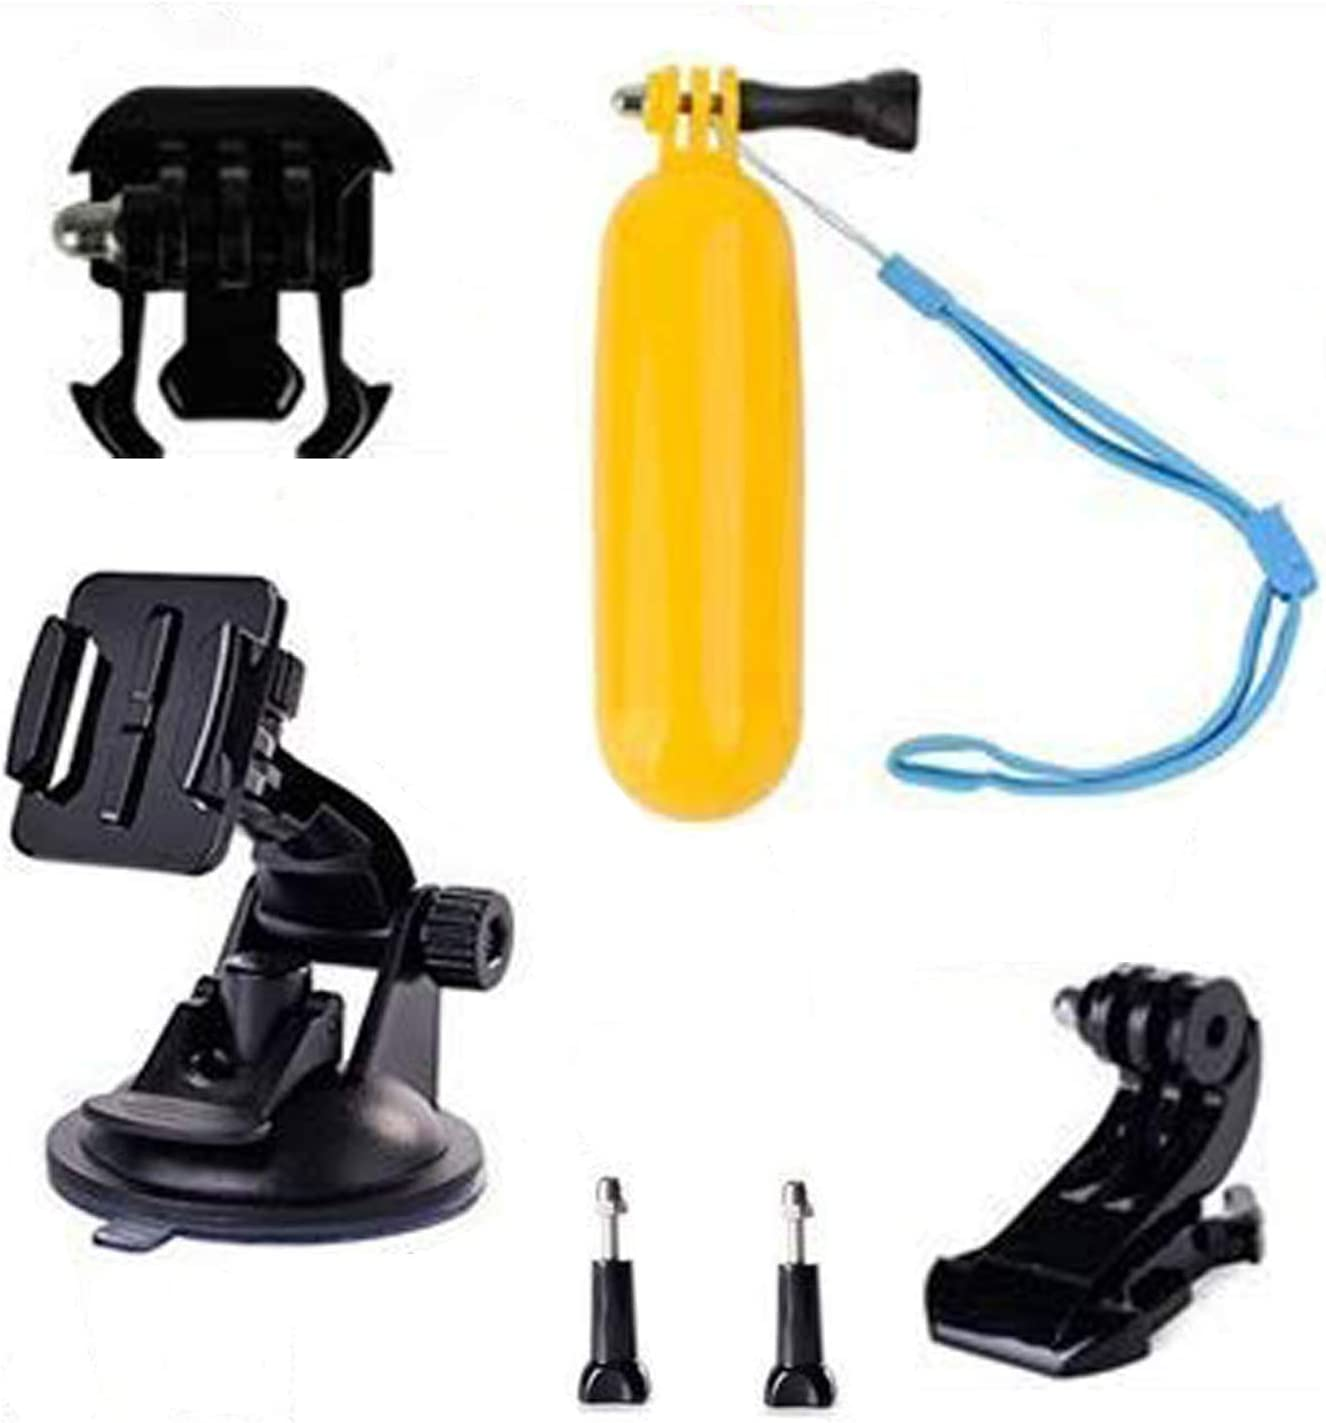 Navitech 8 in 1 Action Camera Accessory Combo Kit Compatible with The SOOCOO C30 4K Action Camera